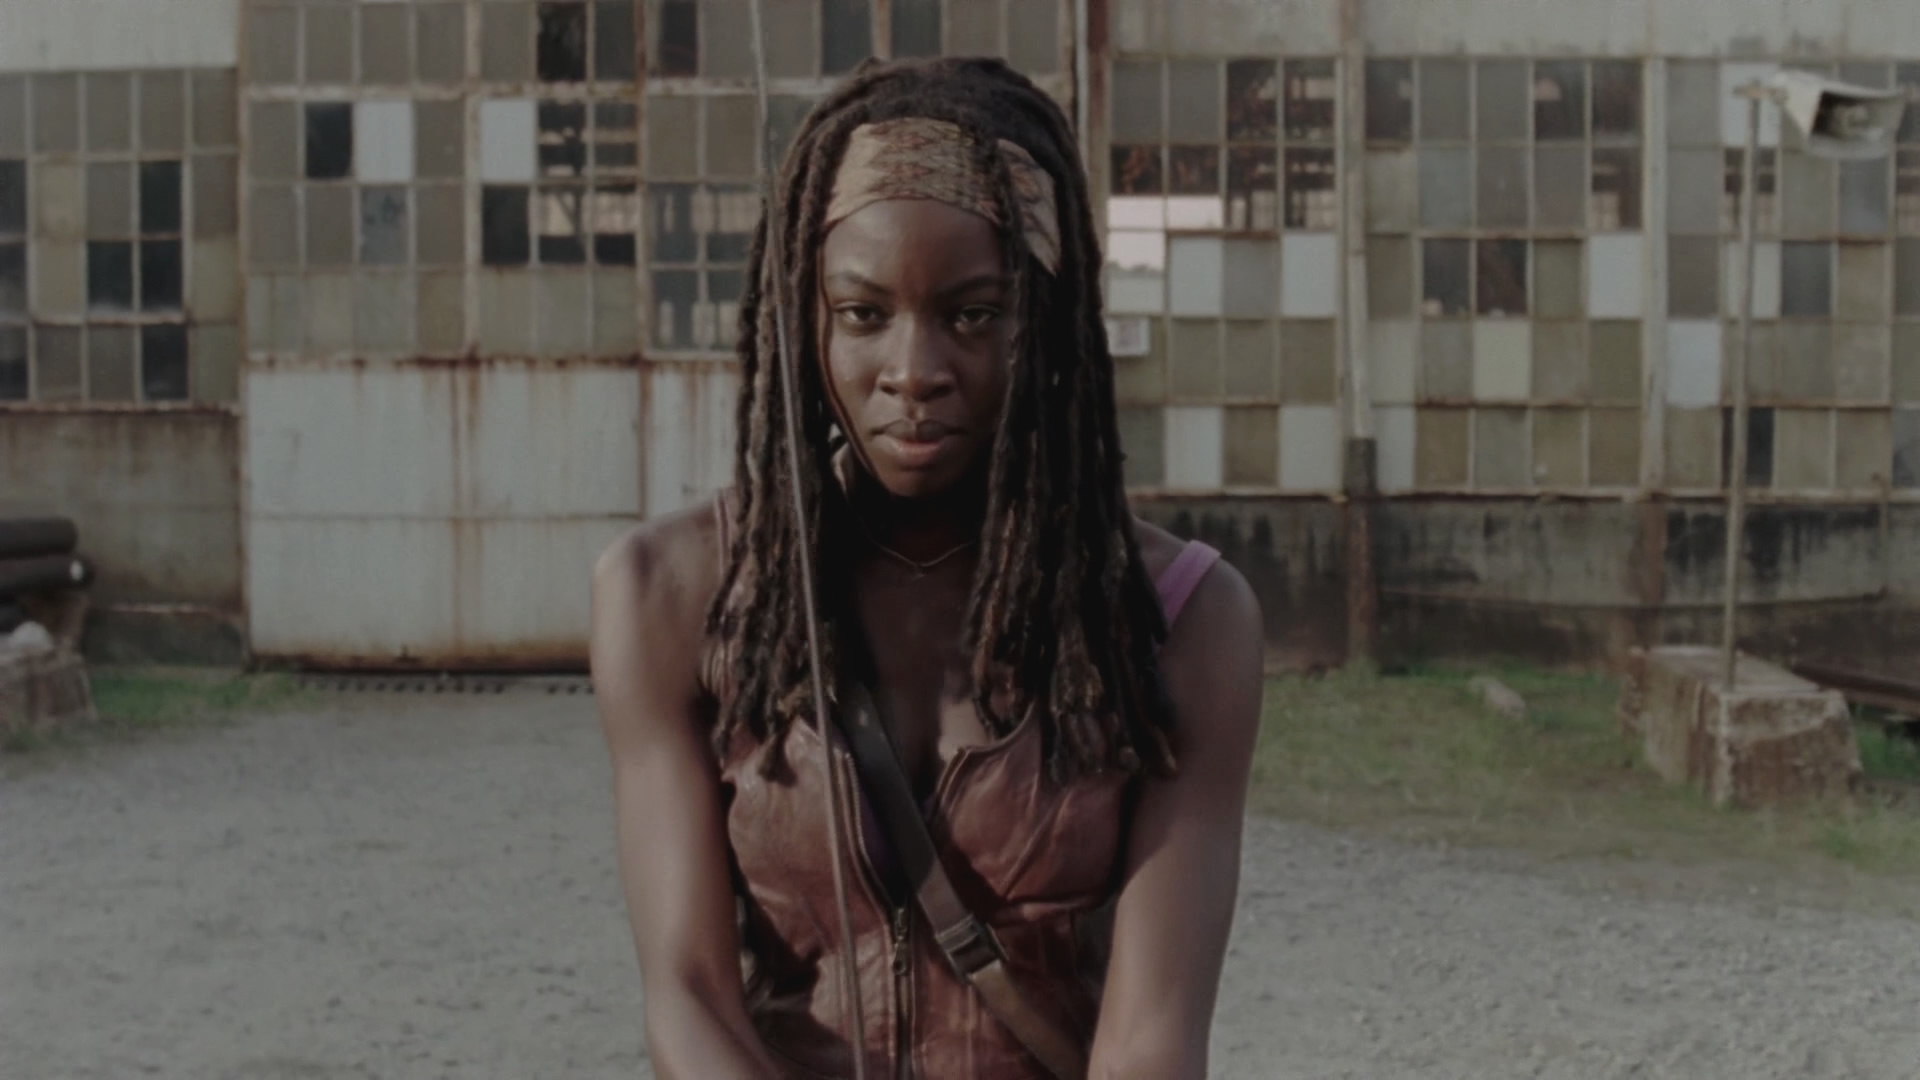 'The Walking Dead' Season 3 Episode 5 Captures